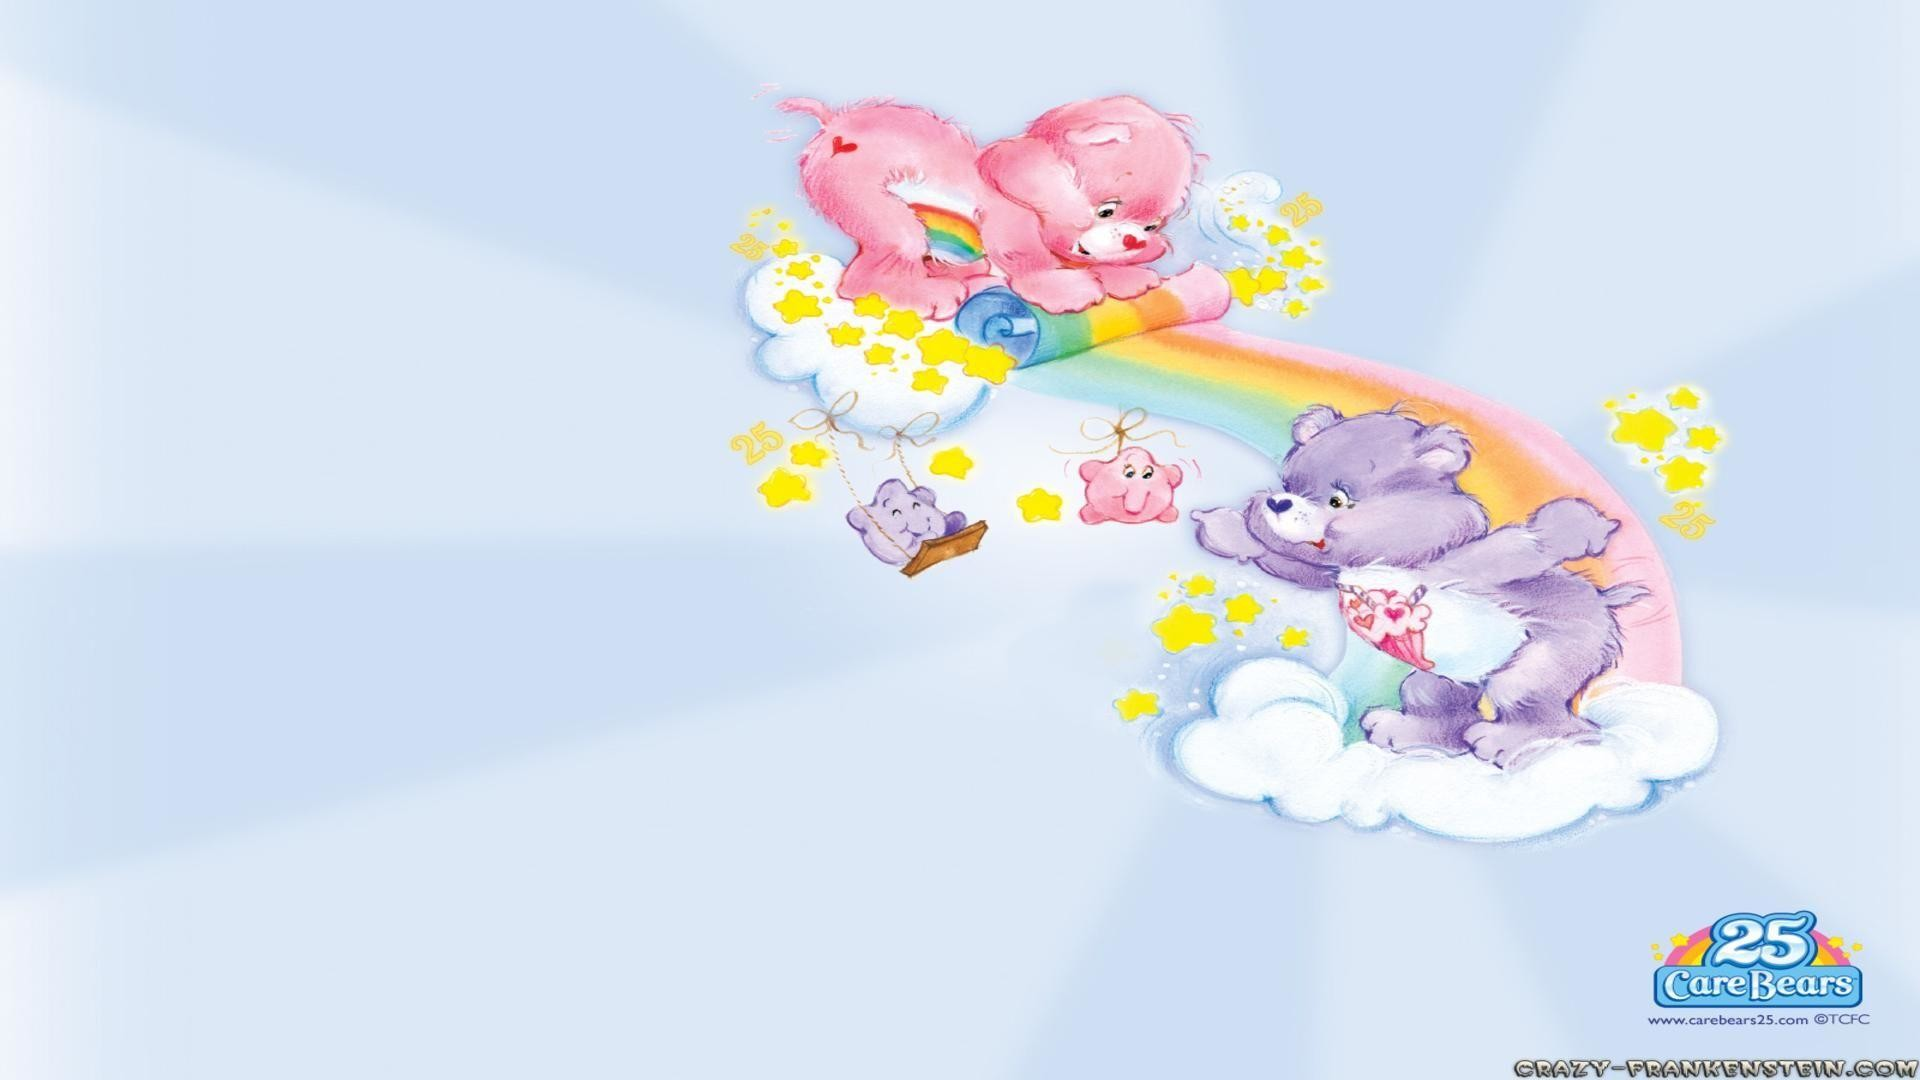 1920x1080 Clouds care bears wallpapers free desktop background - free .